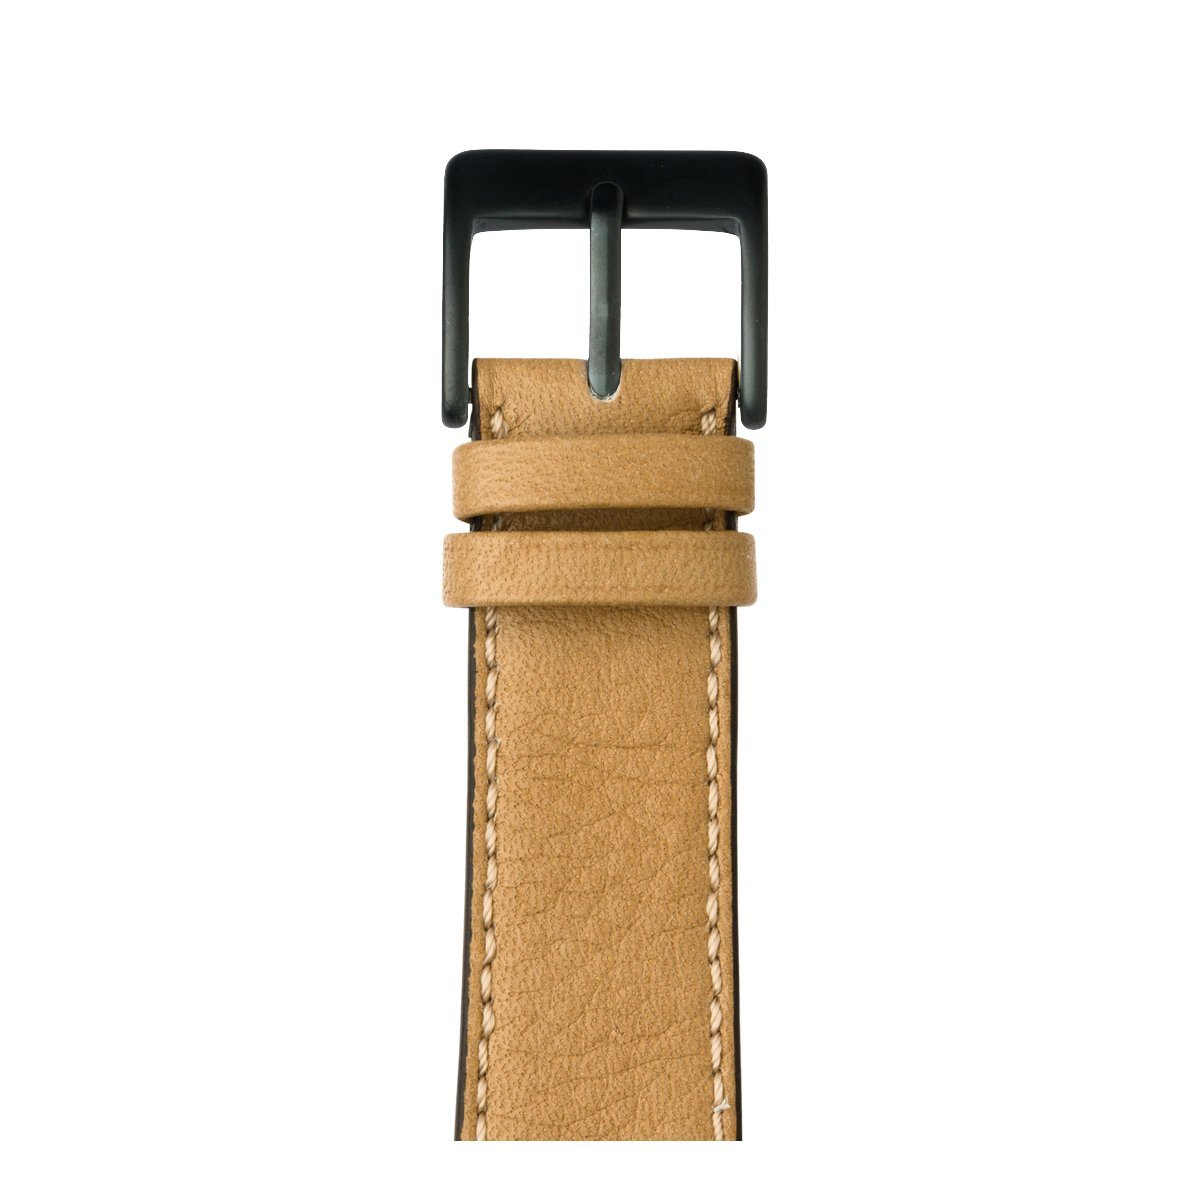 Roobaya | Premium Sauvage Leather Apple Watch Band in Sand | Includes Adapters matching the Color of the Apple Watch, Case Color:Space Gray Aluminum, Size:42 mm